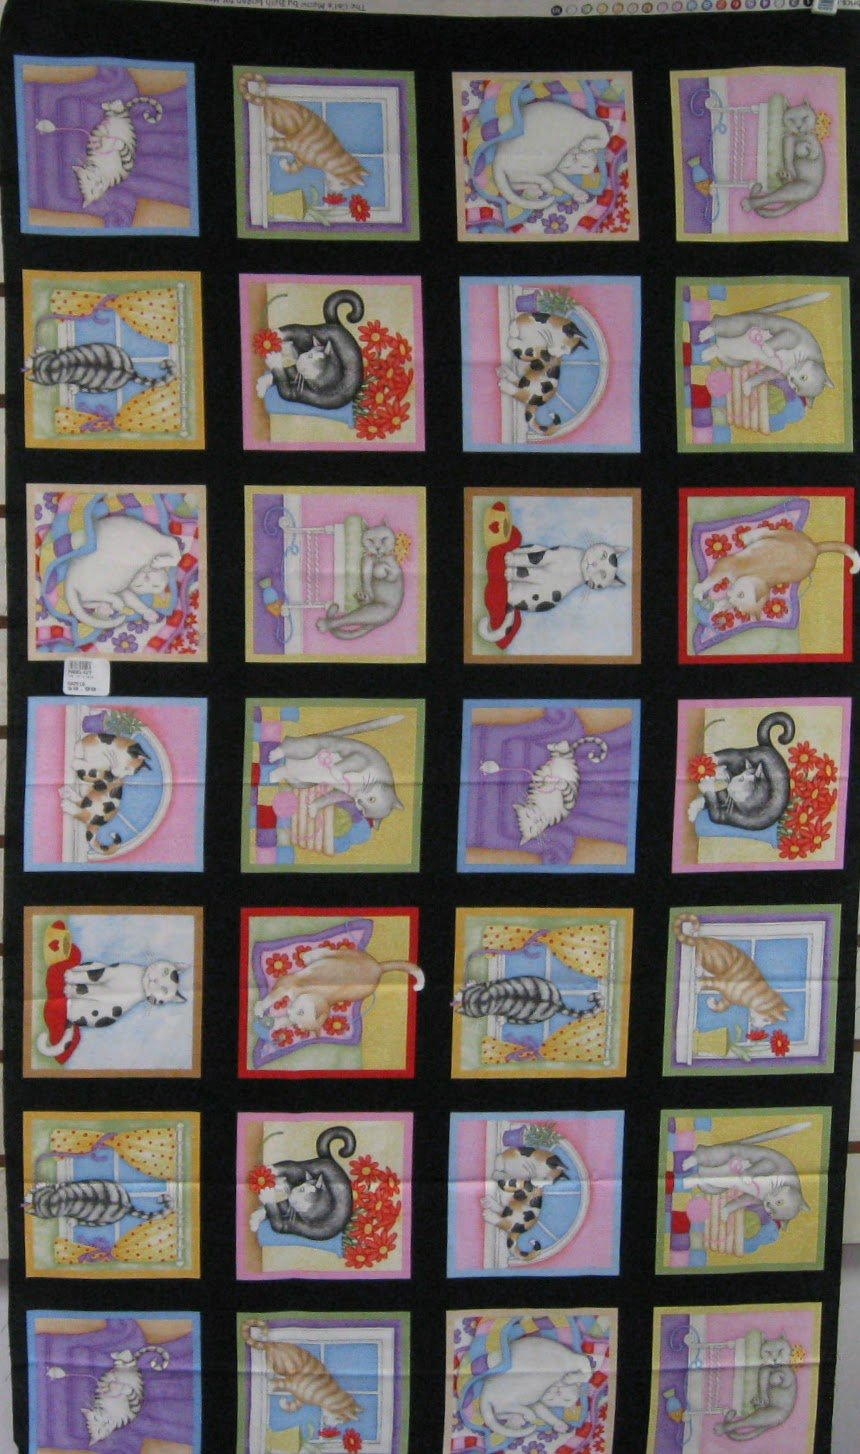 The Cat's Meow Quilt Panel by Beth Logan